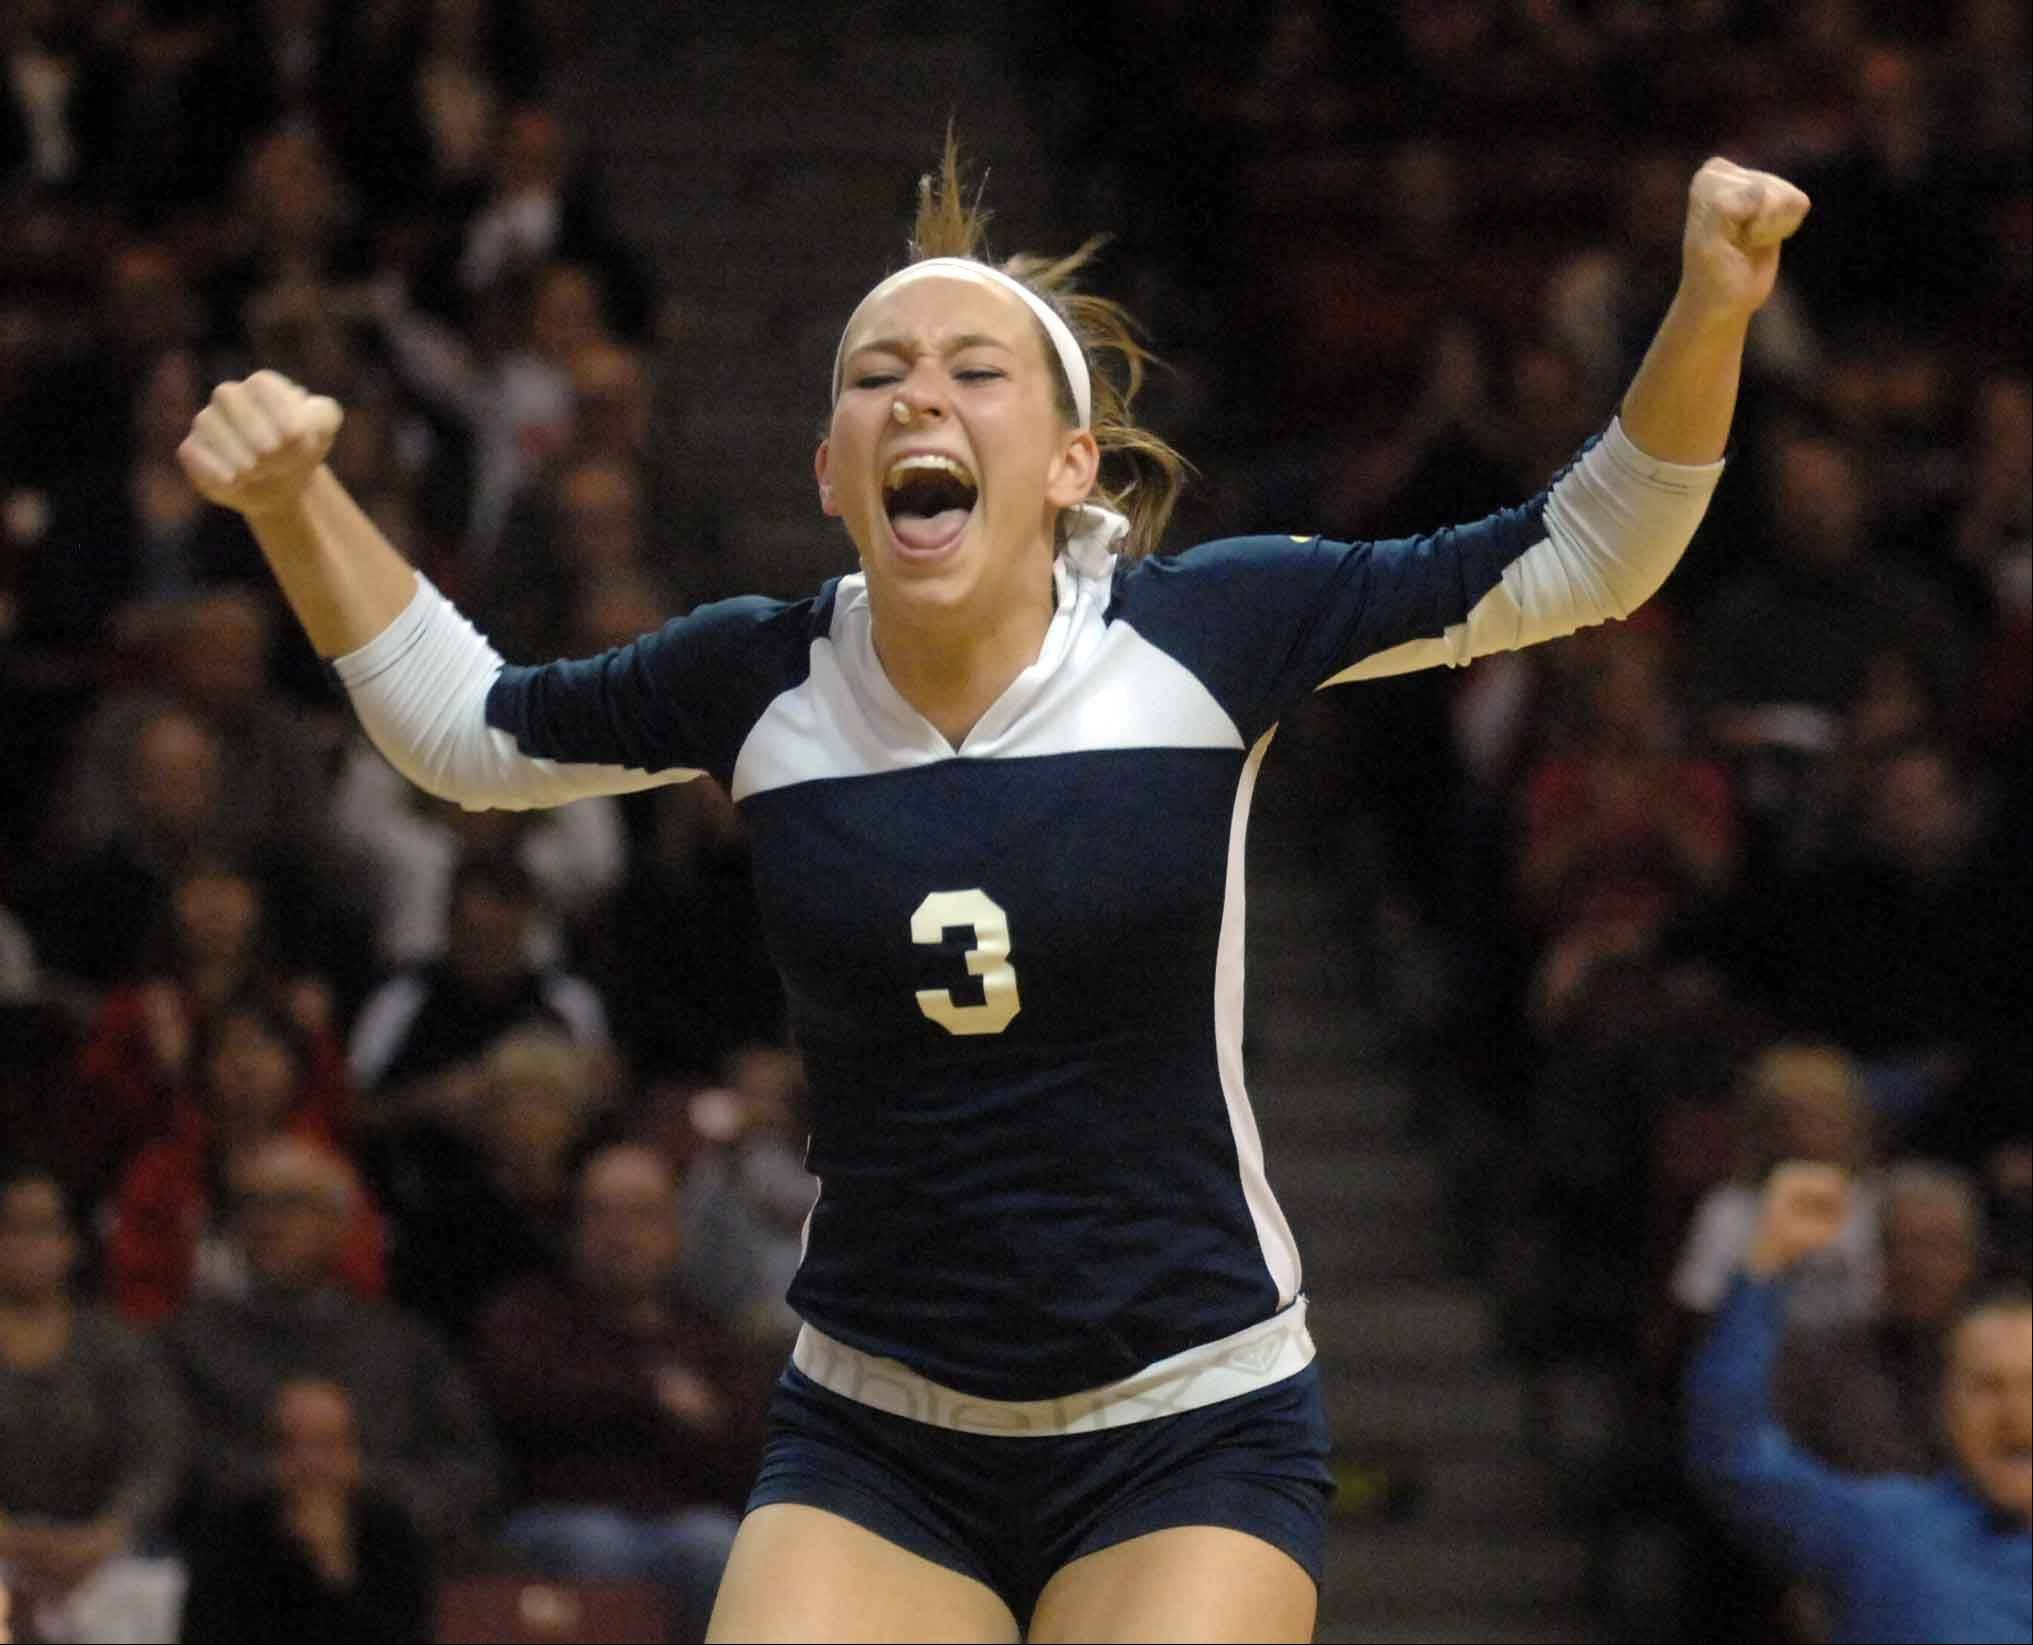 Korey Kronforst of Cary-Grove gets excited during the Benet vs. Cary Class 4A volleyball championship in Normal Saturday.